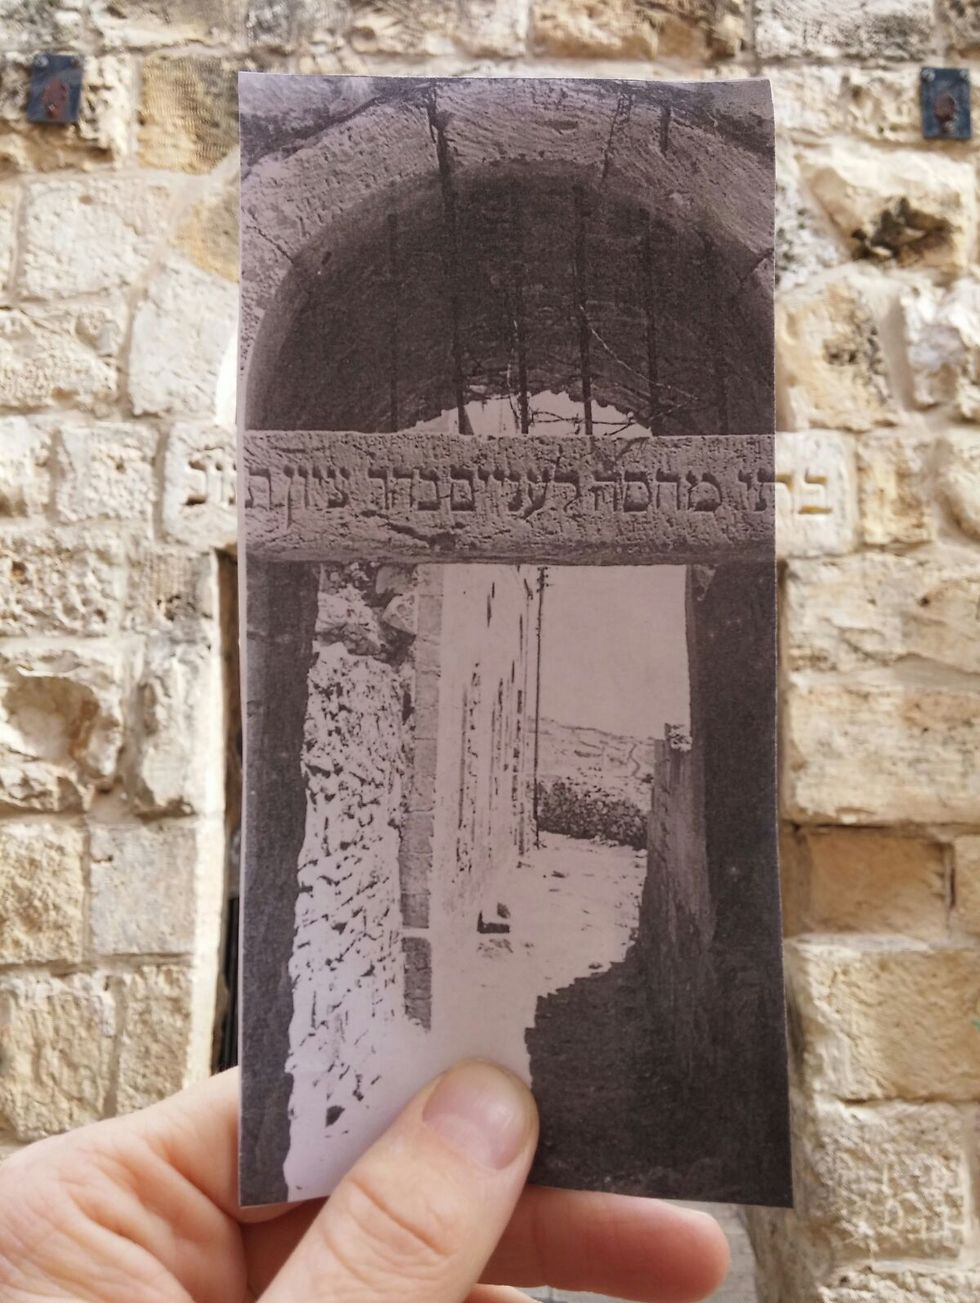 Entrance gate to shelters in the Old City of Jerusalem,1967